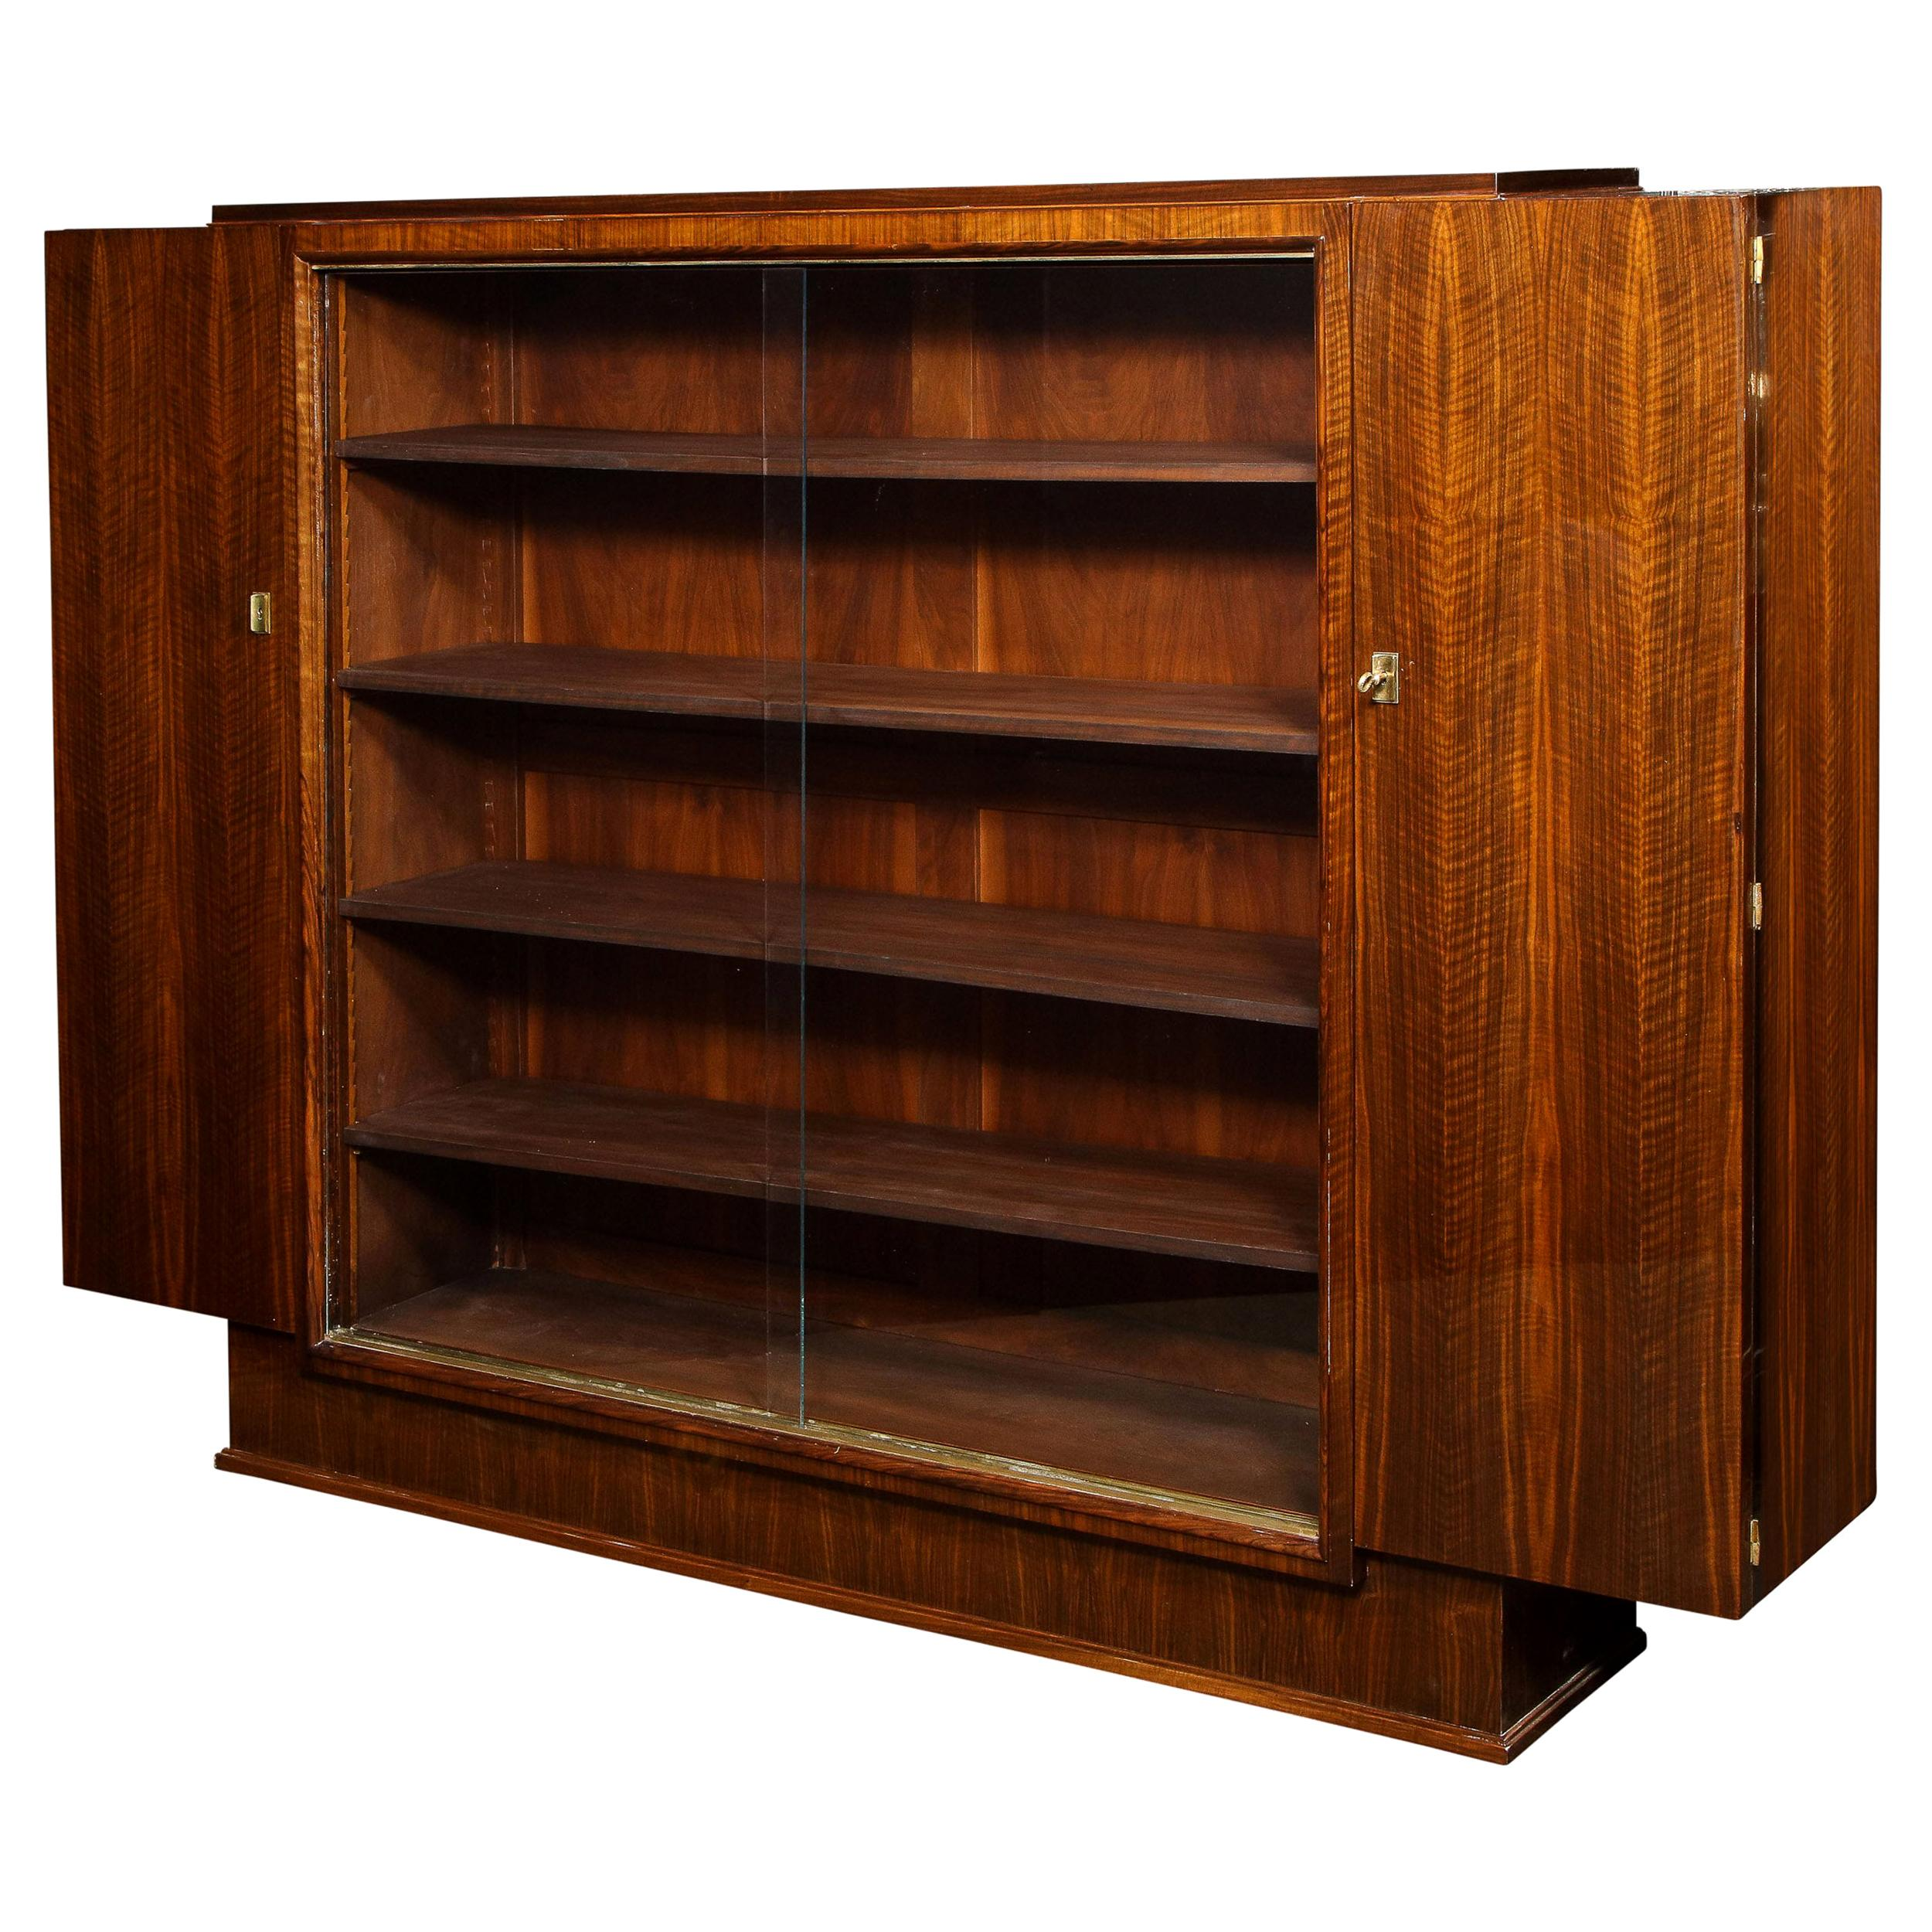 Signed Jules Leleu French Art Deco Bookmatched Rosewood Cabinet or Bibliothèque